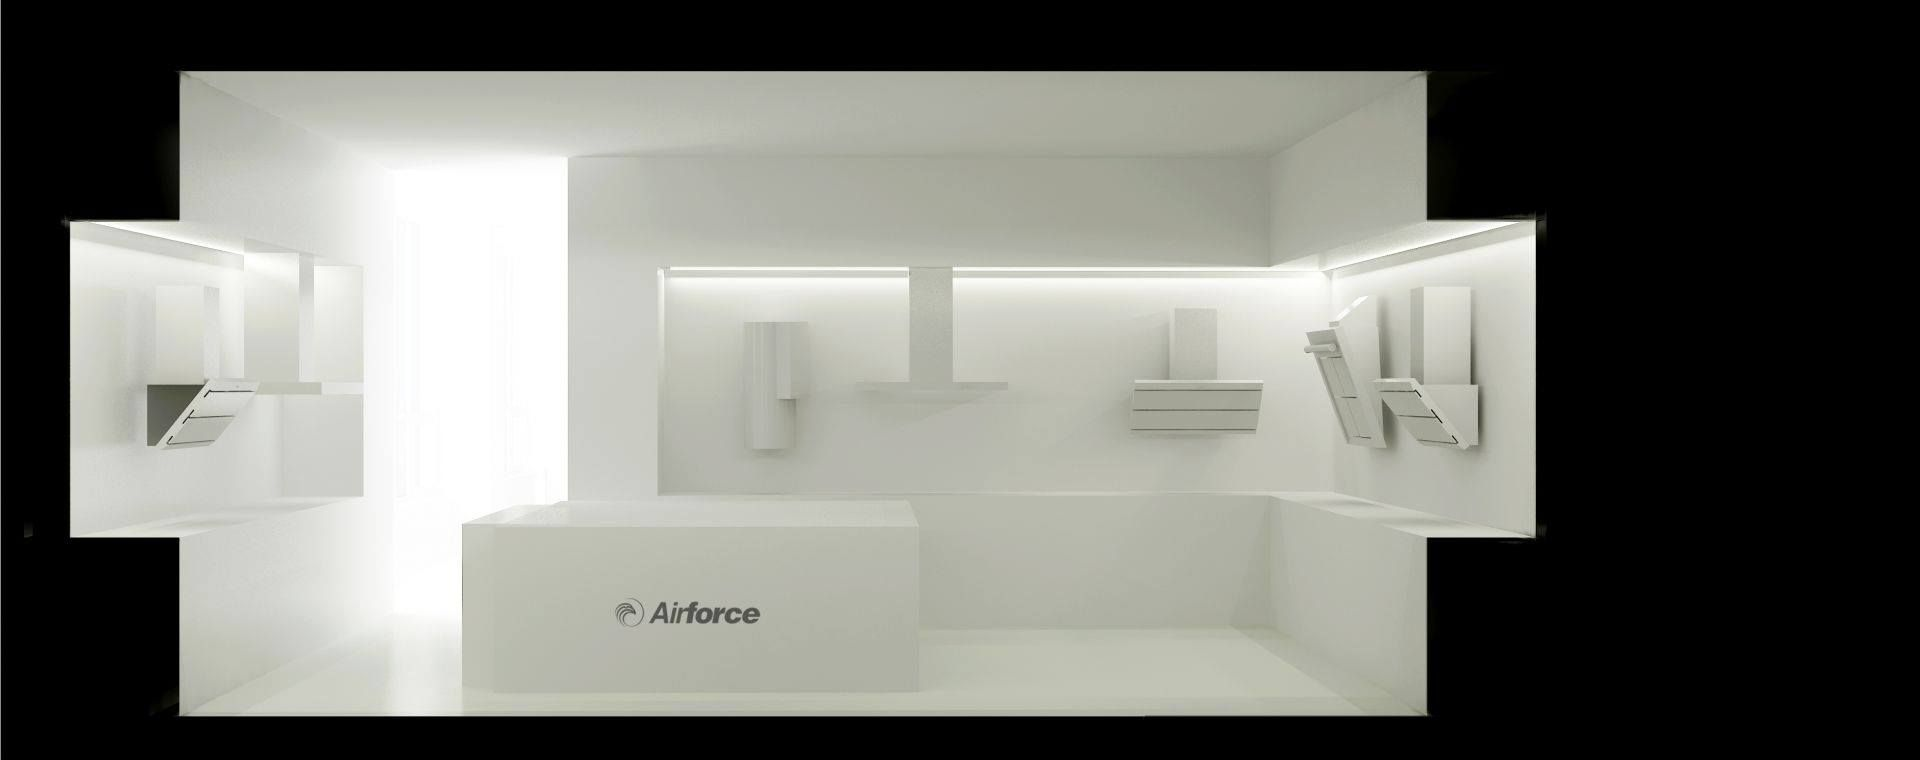 showroom Airforce - architectural study and realization